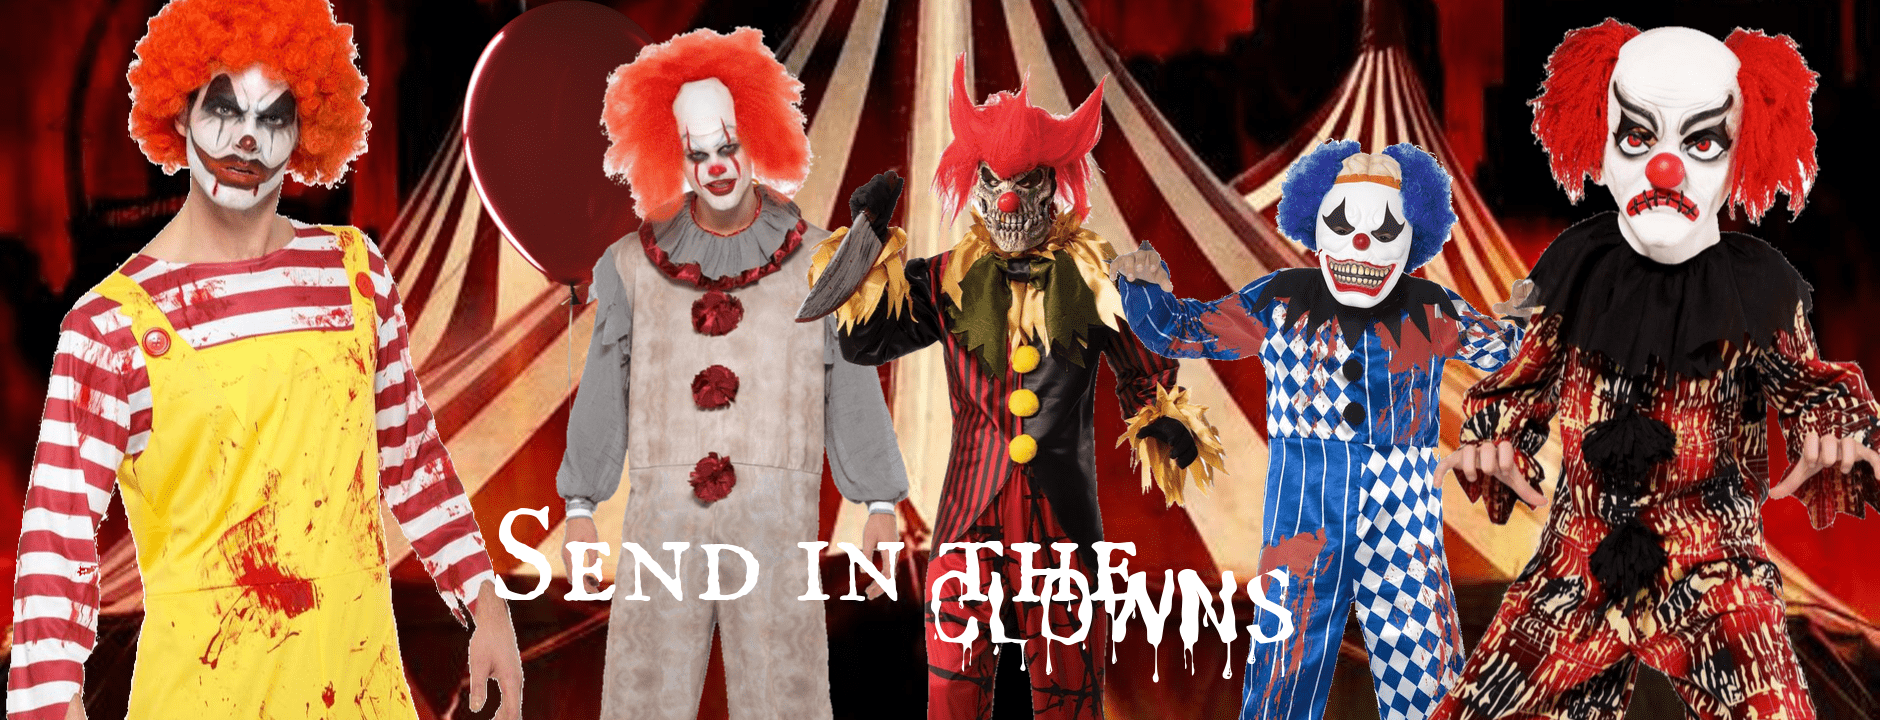 Clown Costumes Pennywise IT Women Men Children Buy Hire Halloween